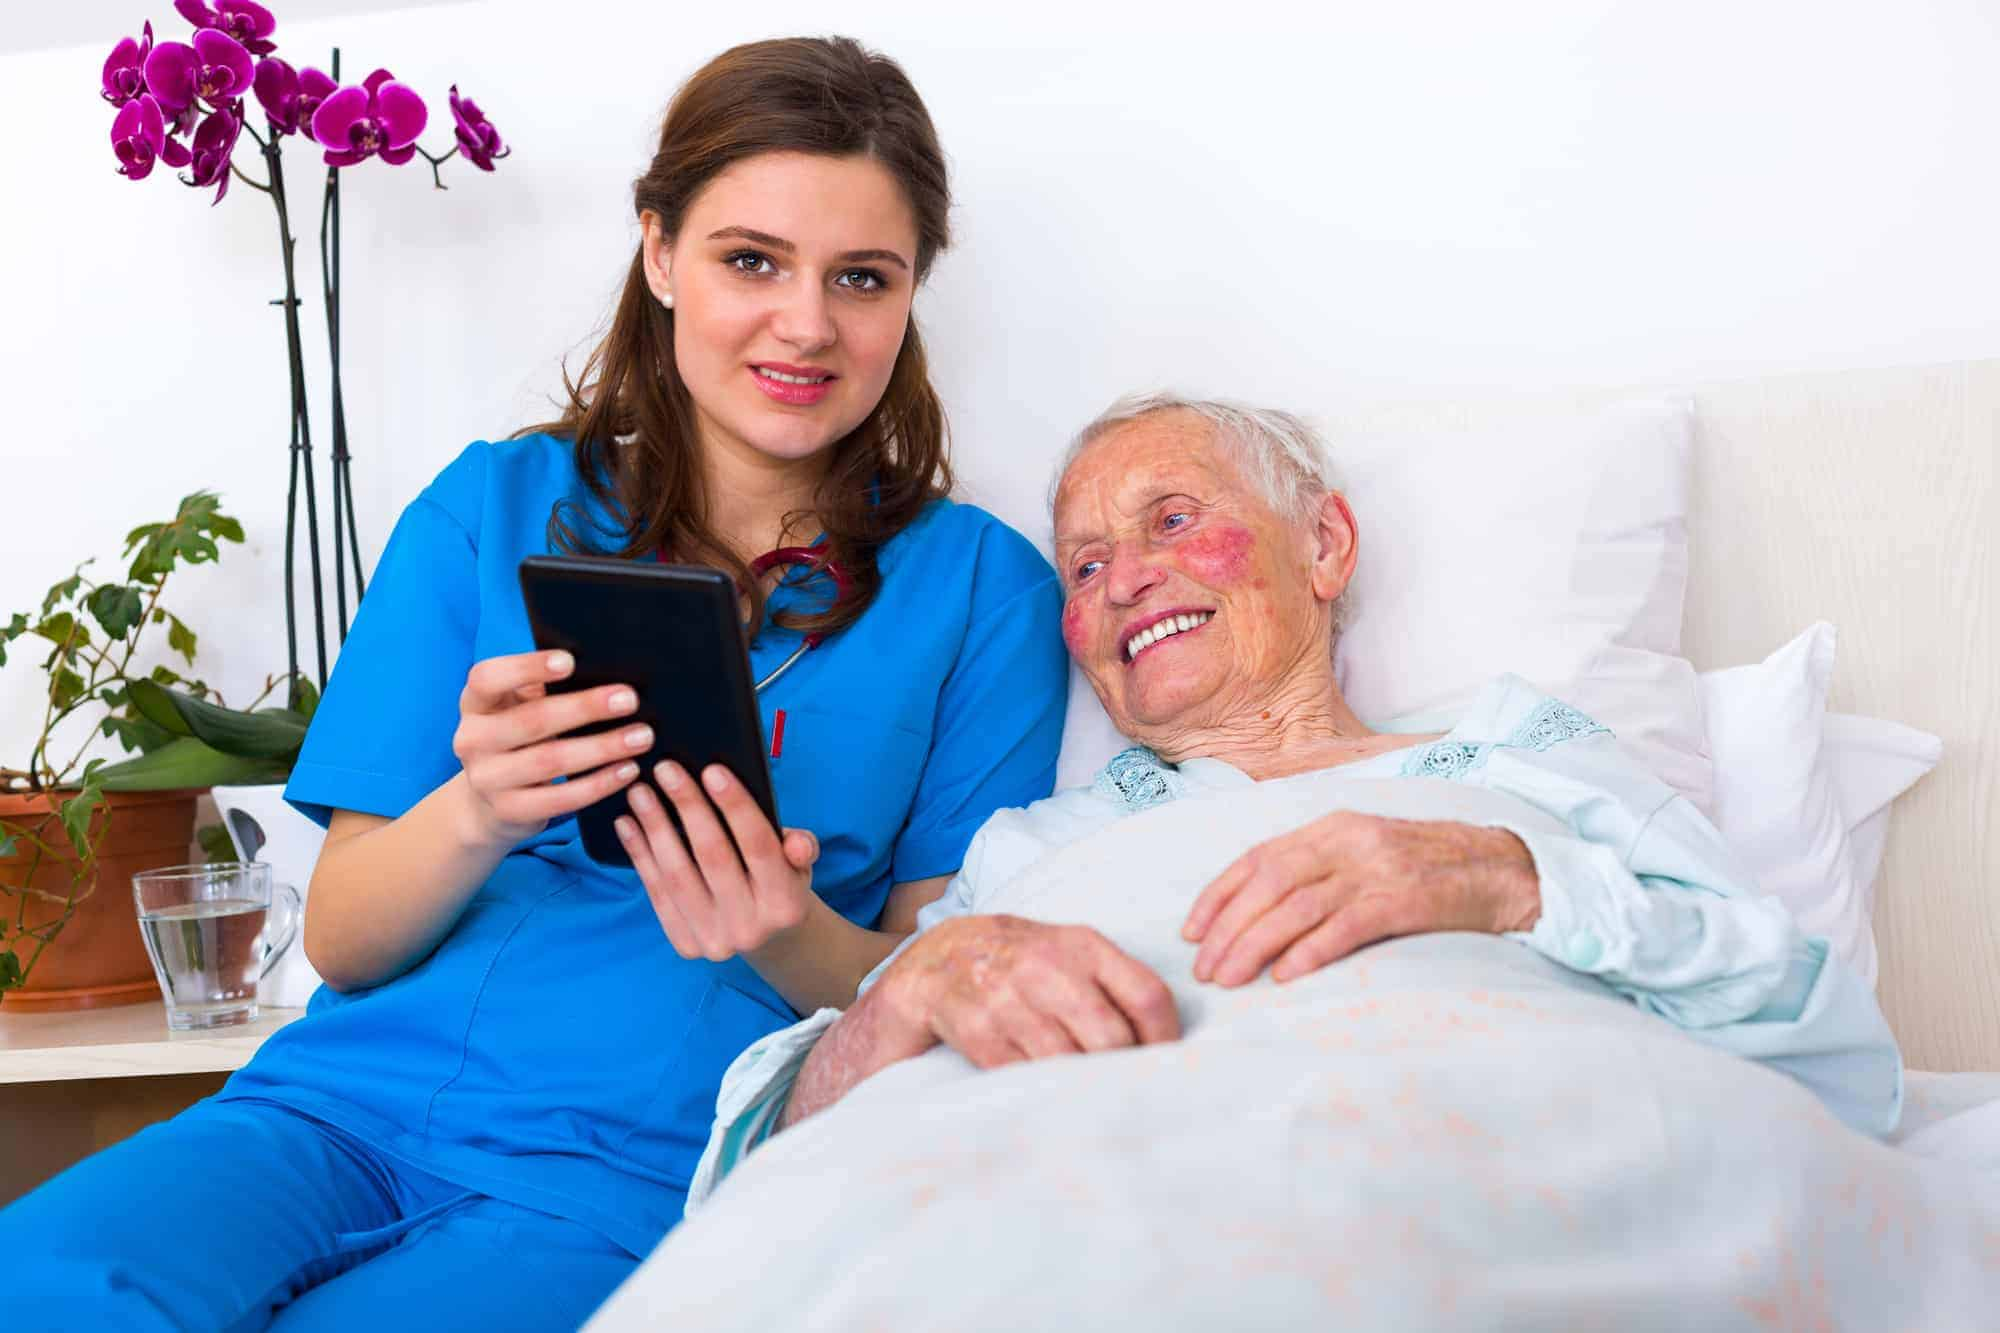 South Jersey Live-in home care